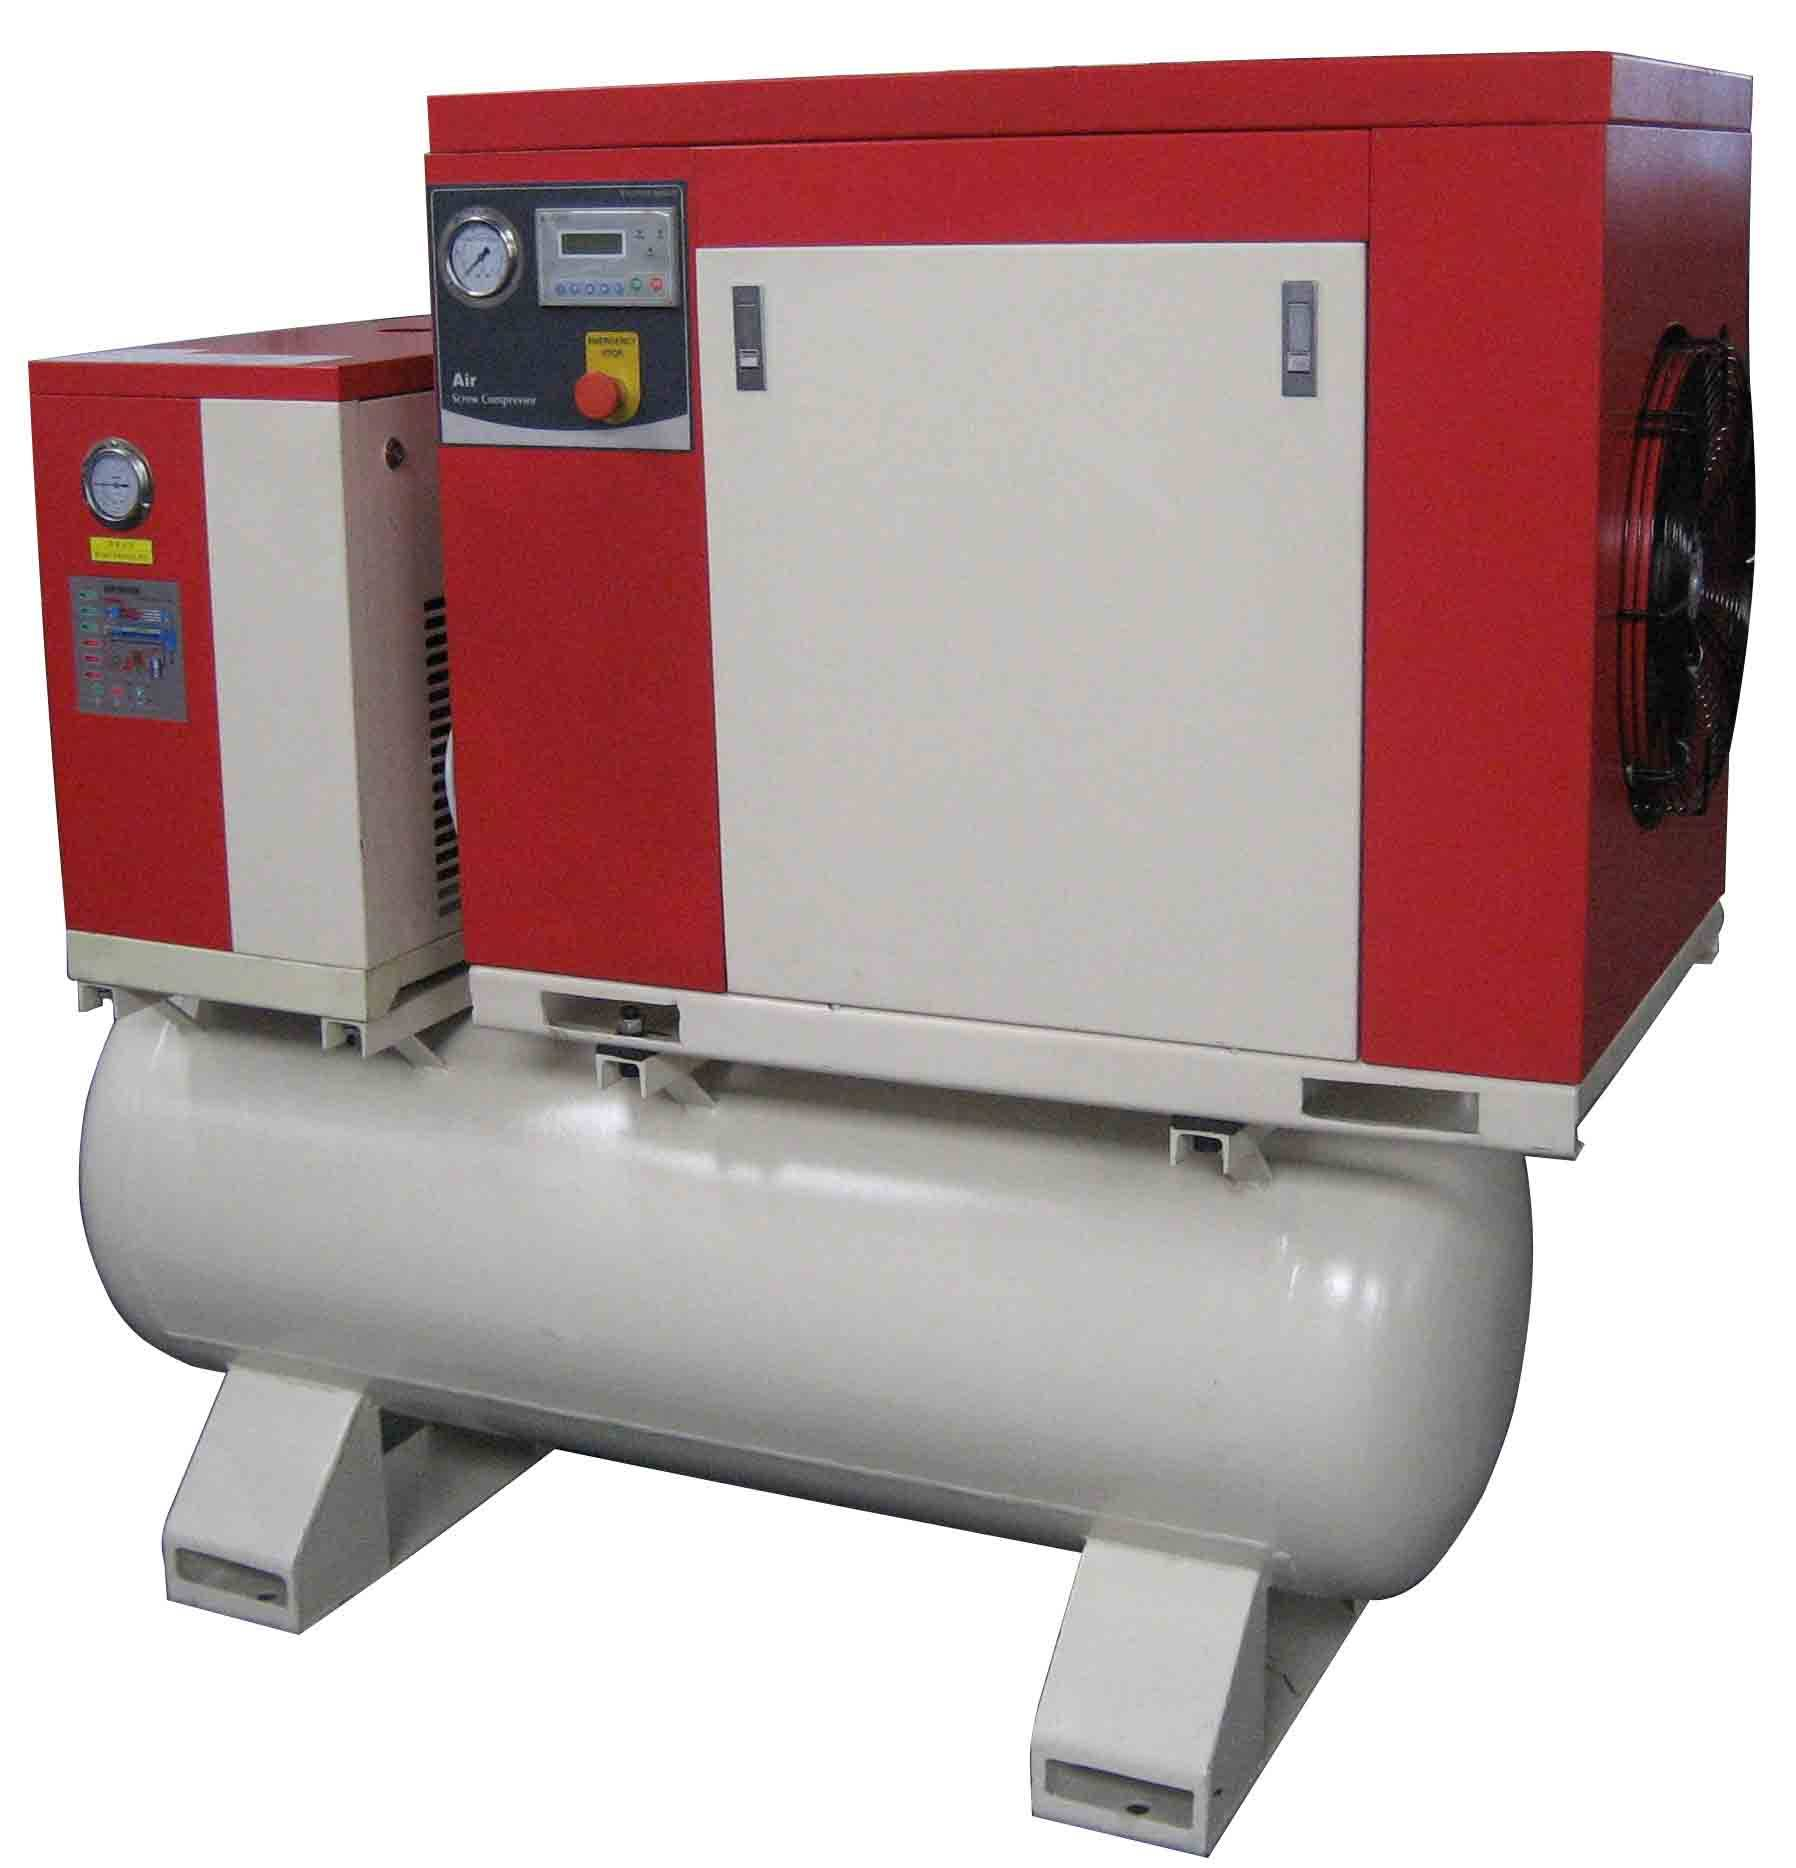 7.5hp screw compressor with dryer and tank